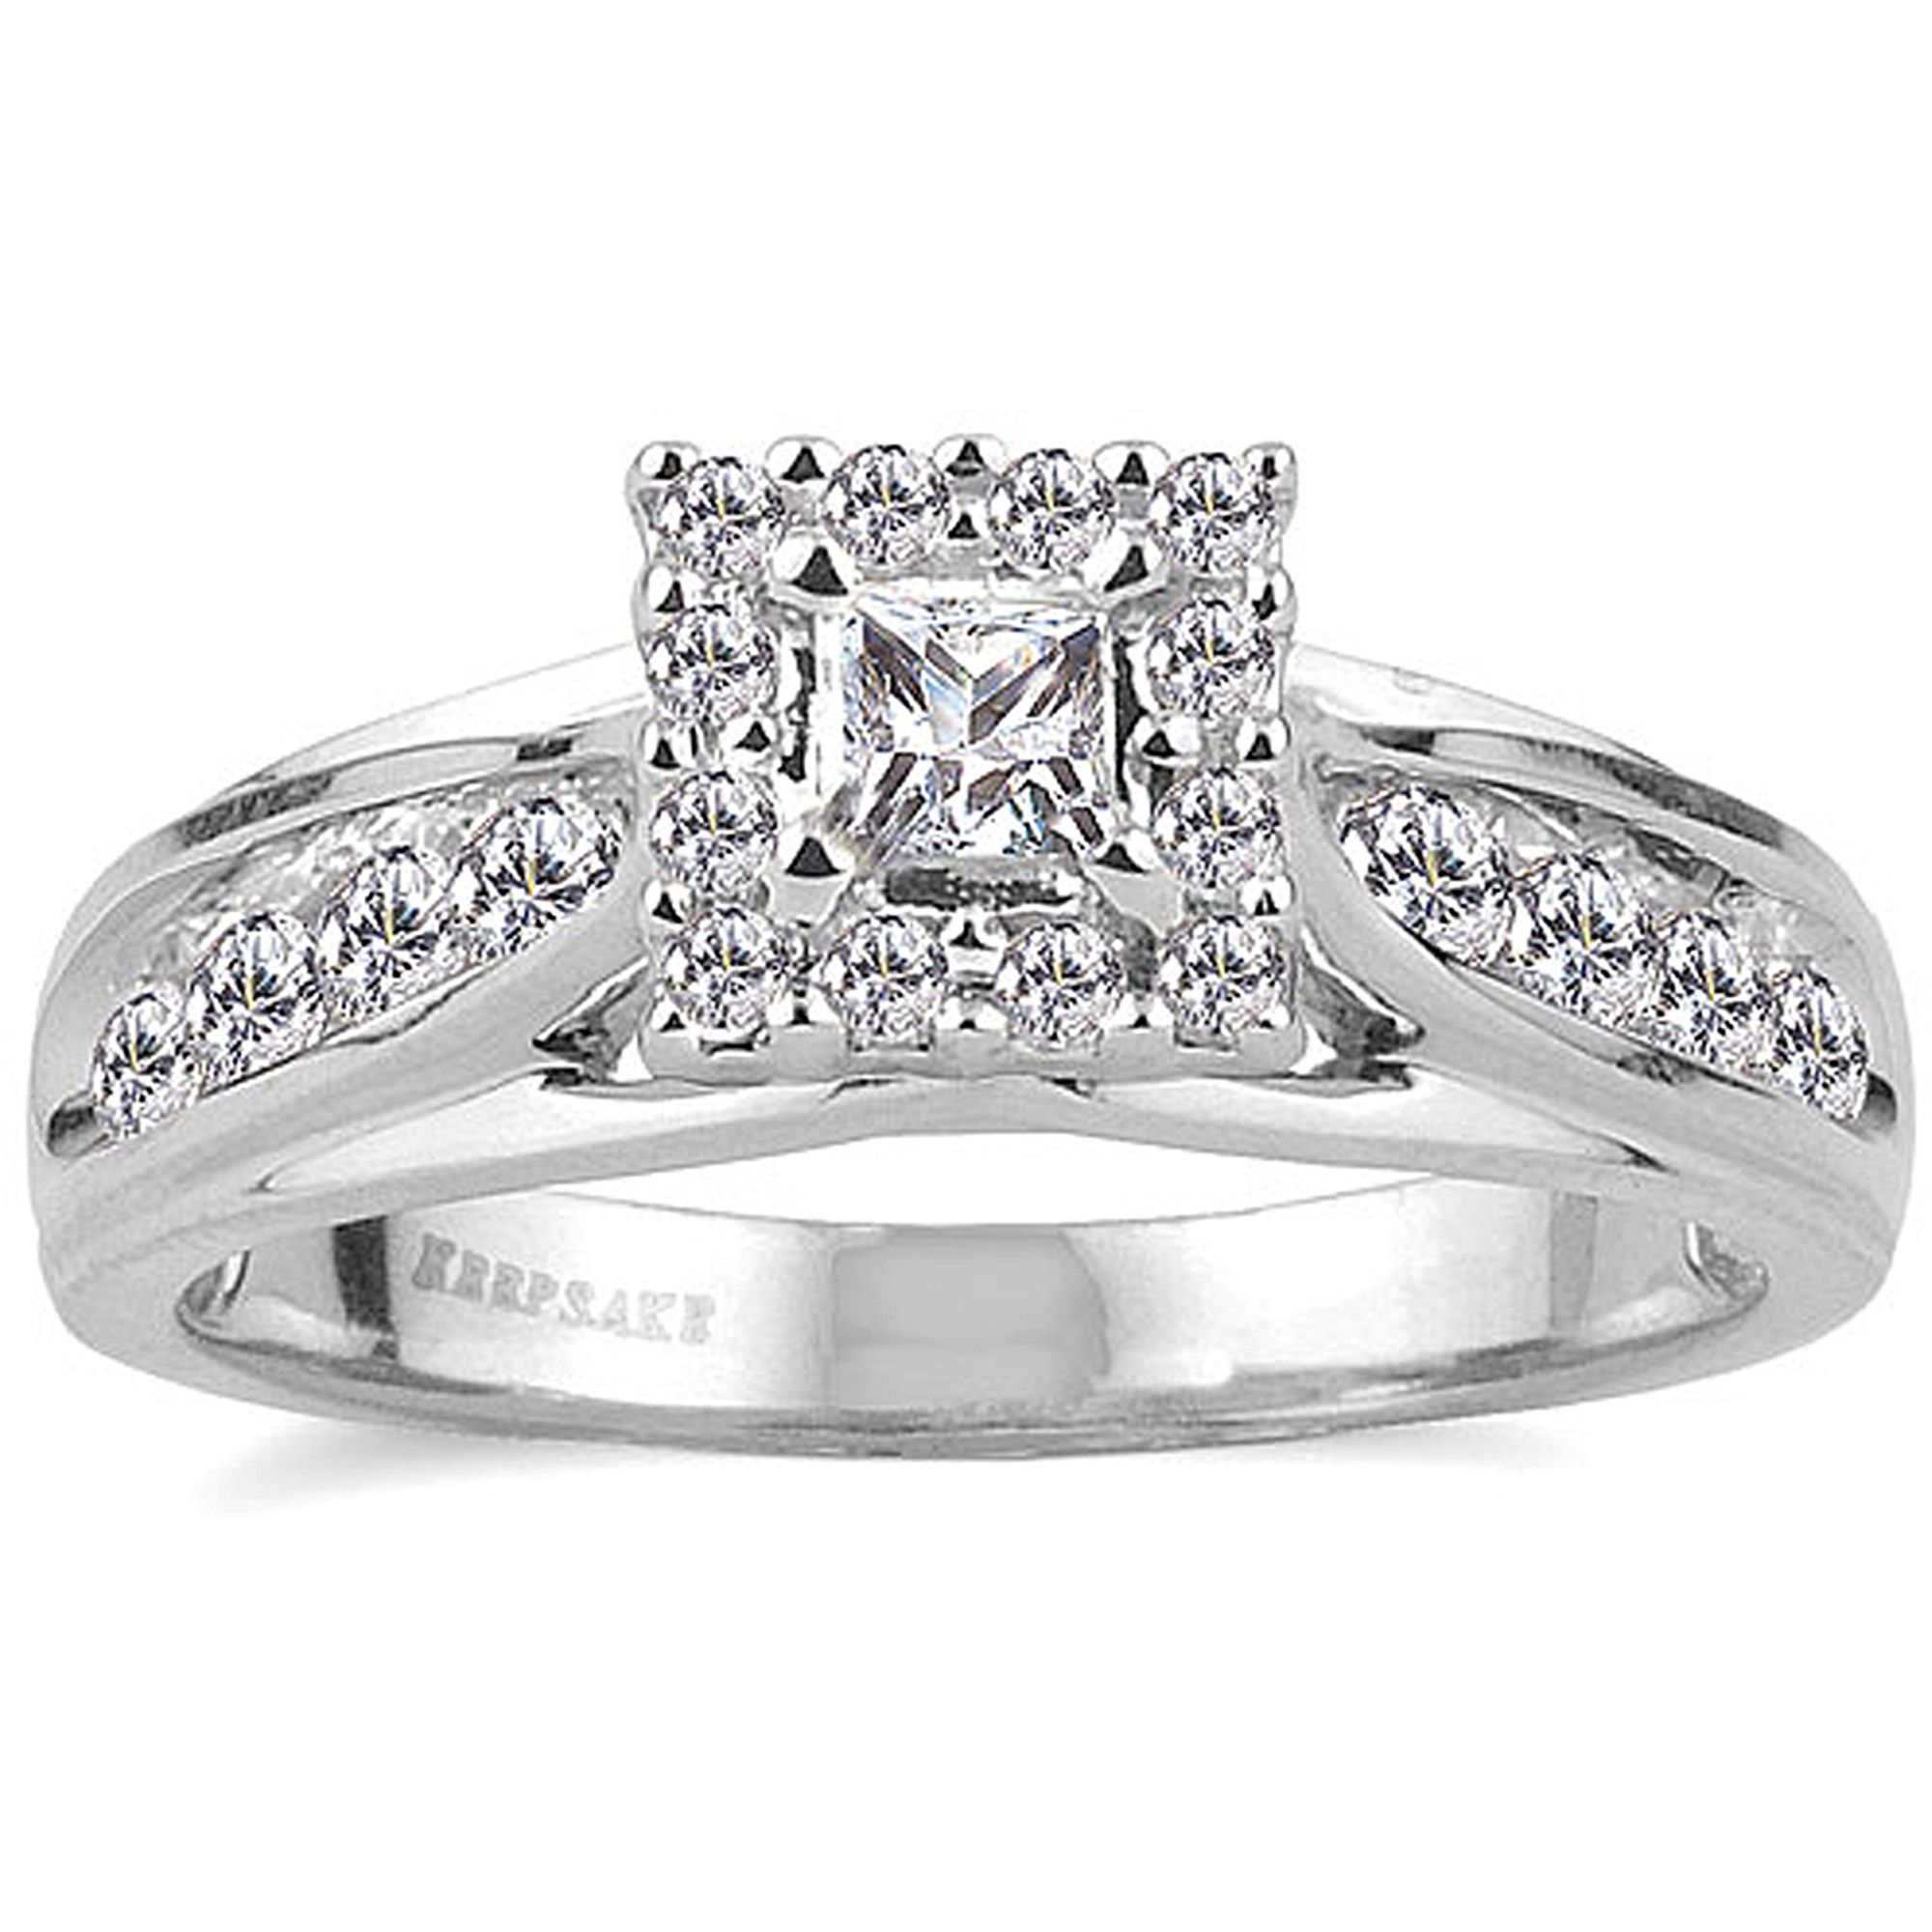 Mens White Gold Wedding Bands Walmart Wed 5 White Gold Rings